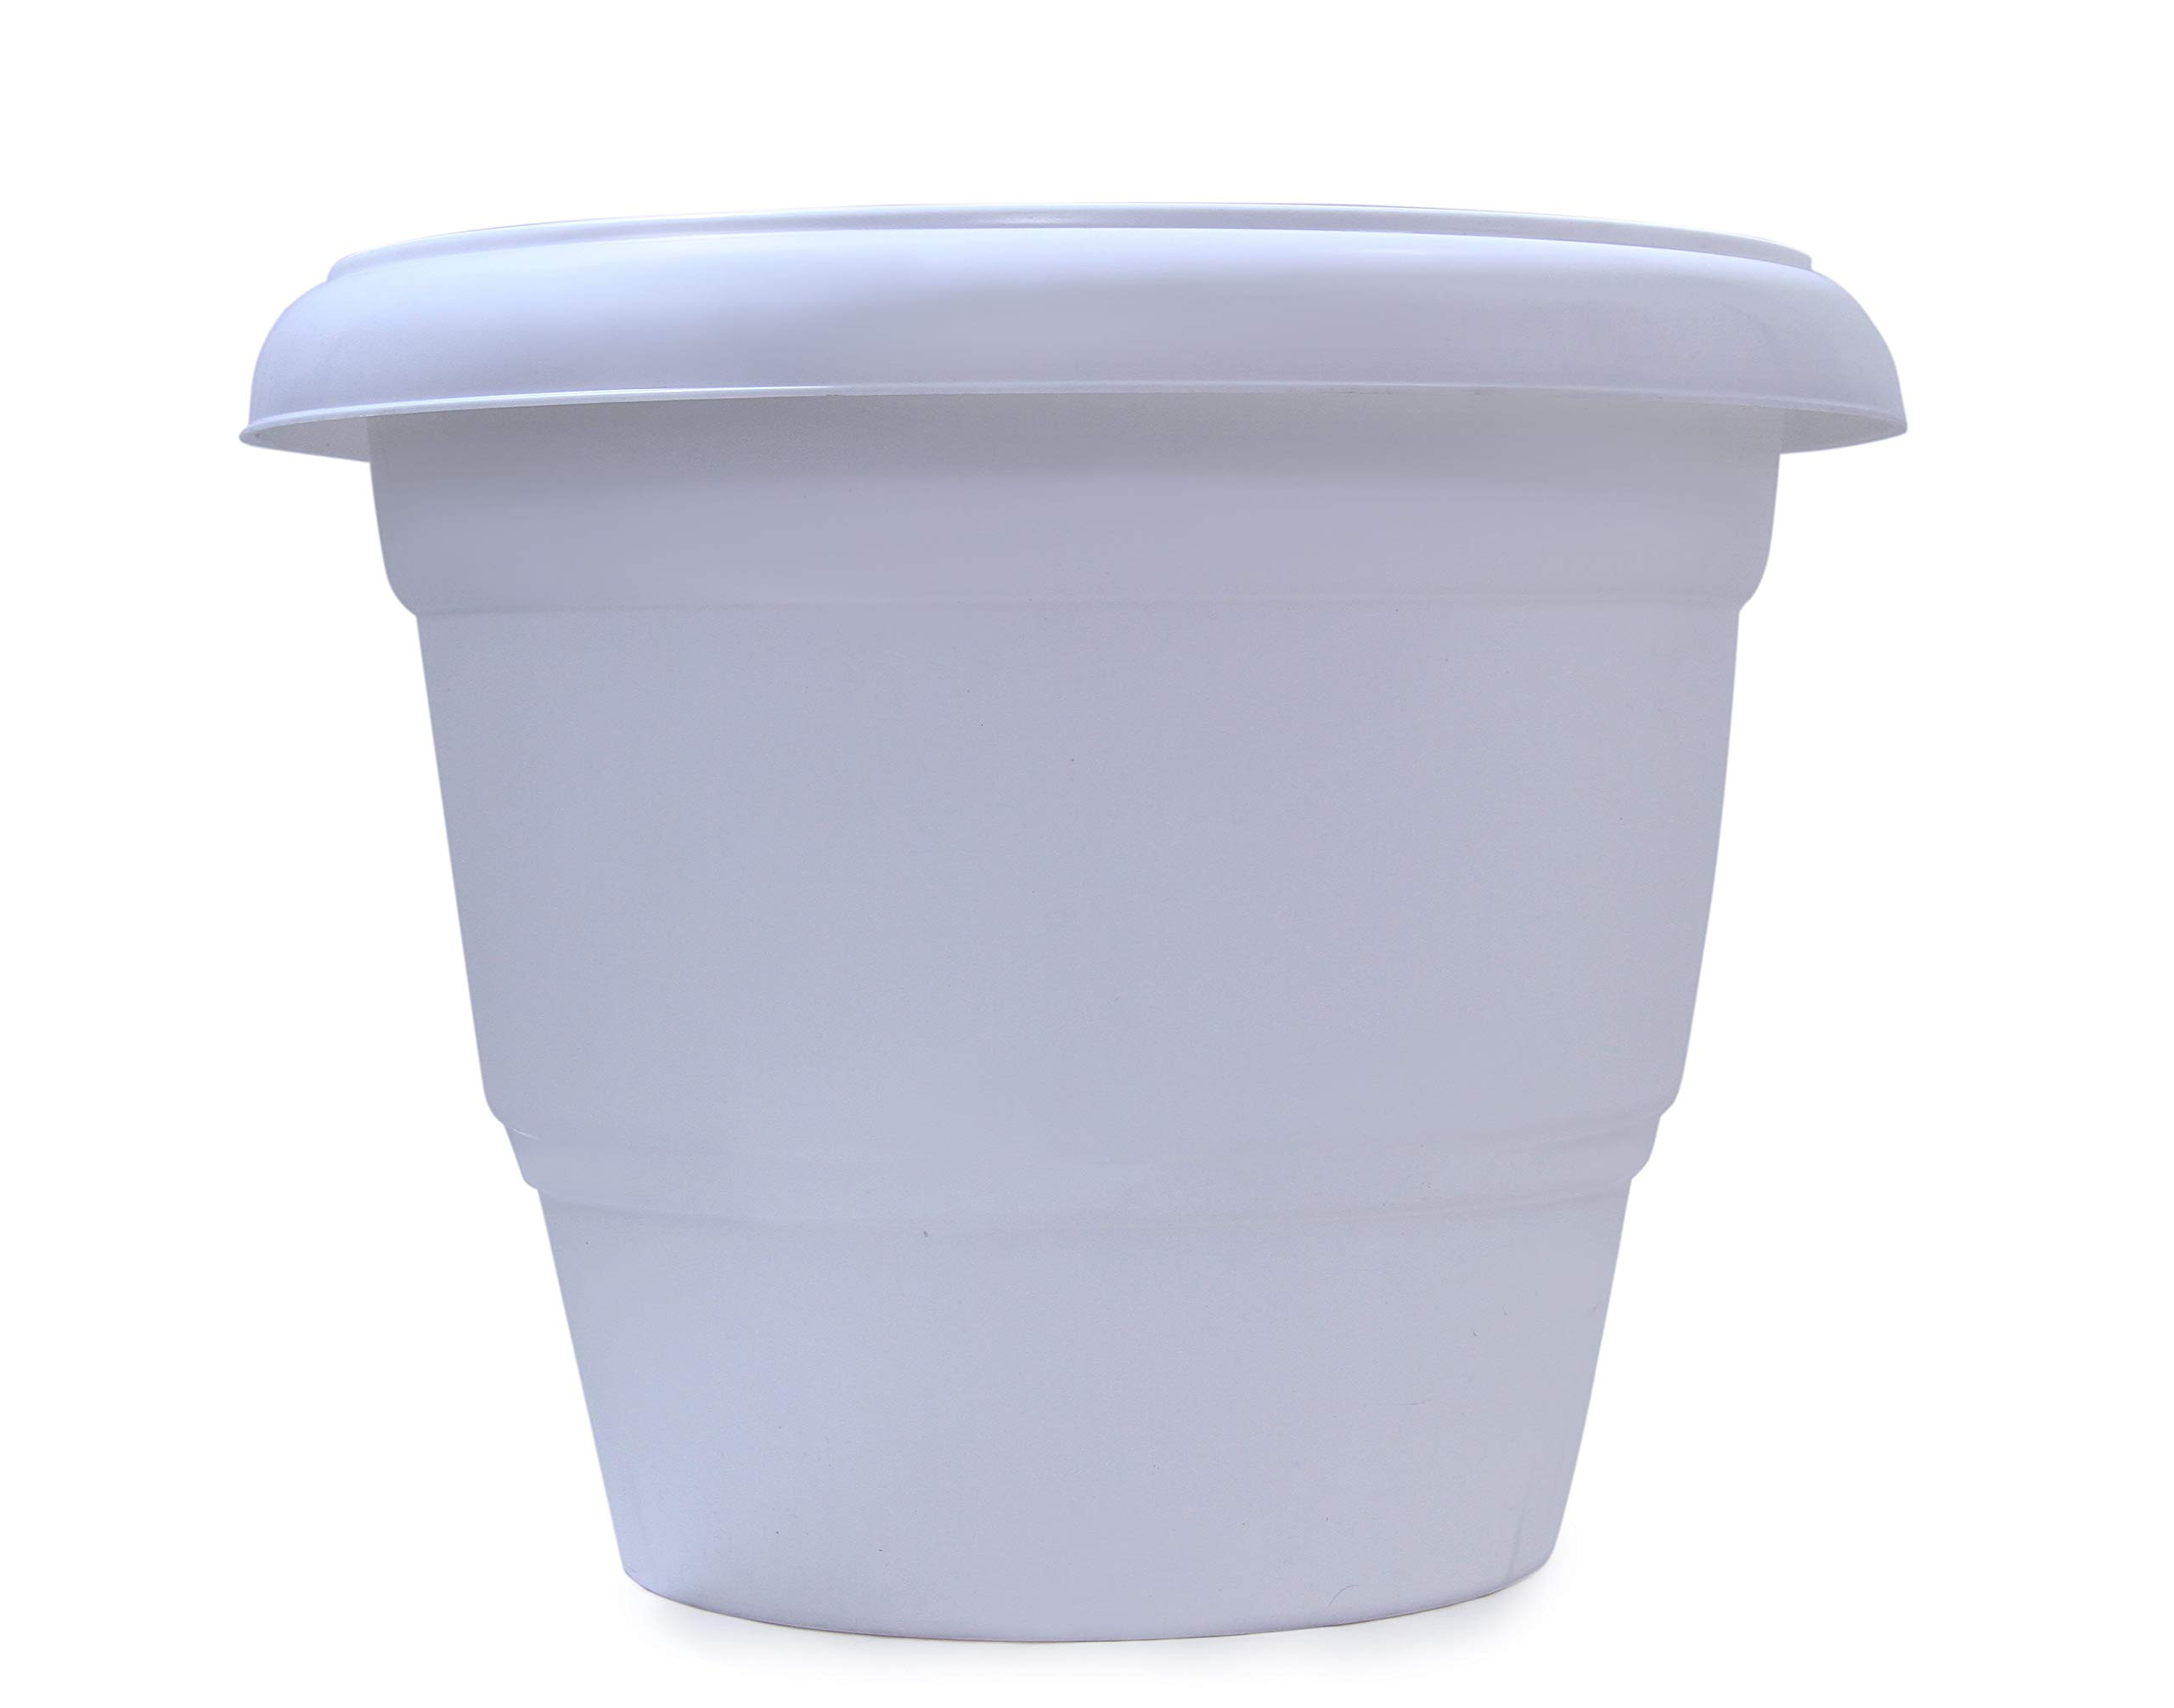 AUTO CAR WINNER High Density Unbreakable Flower Pot Garden Plastic Planters with Drain Hole 18